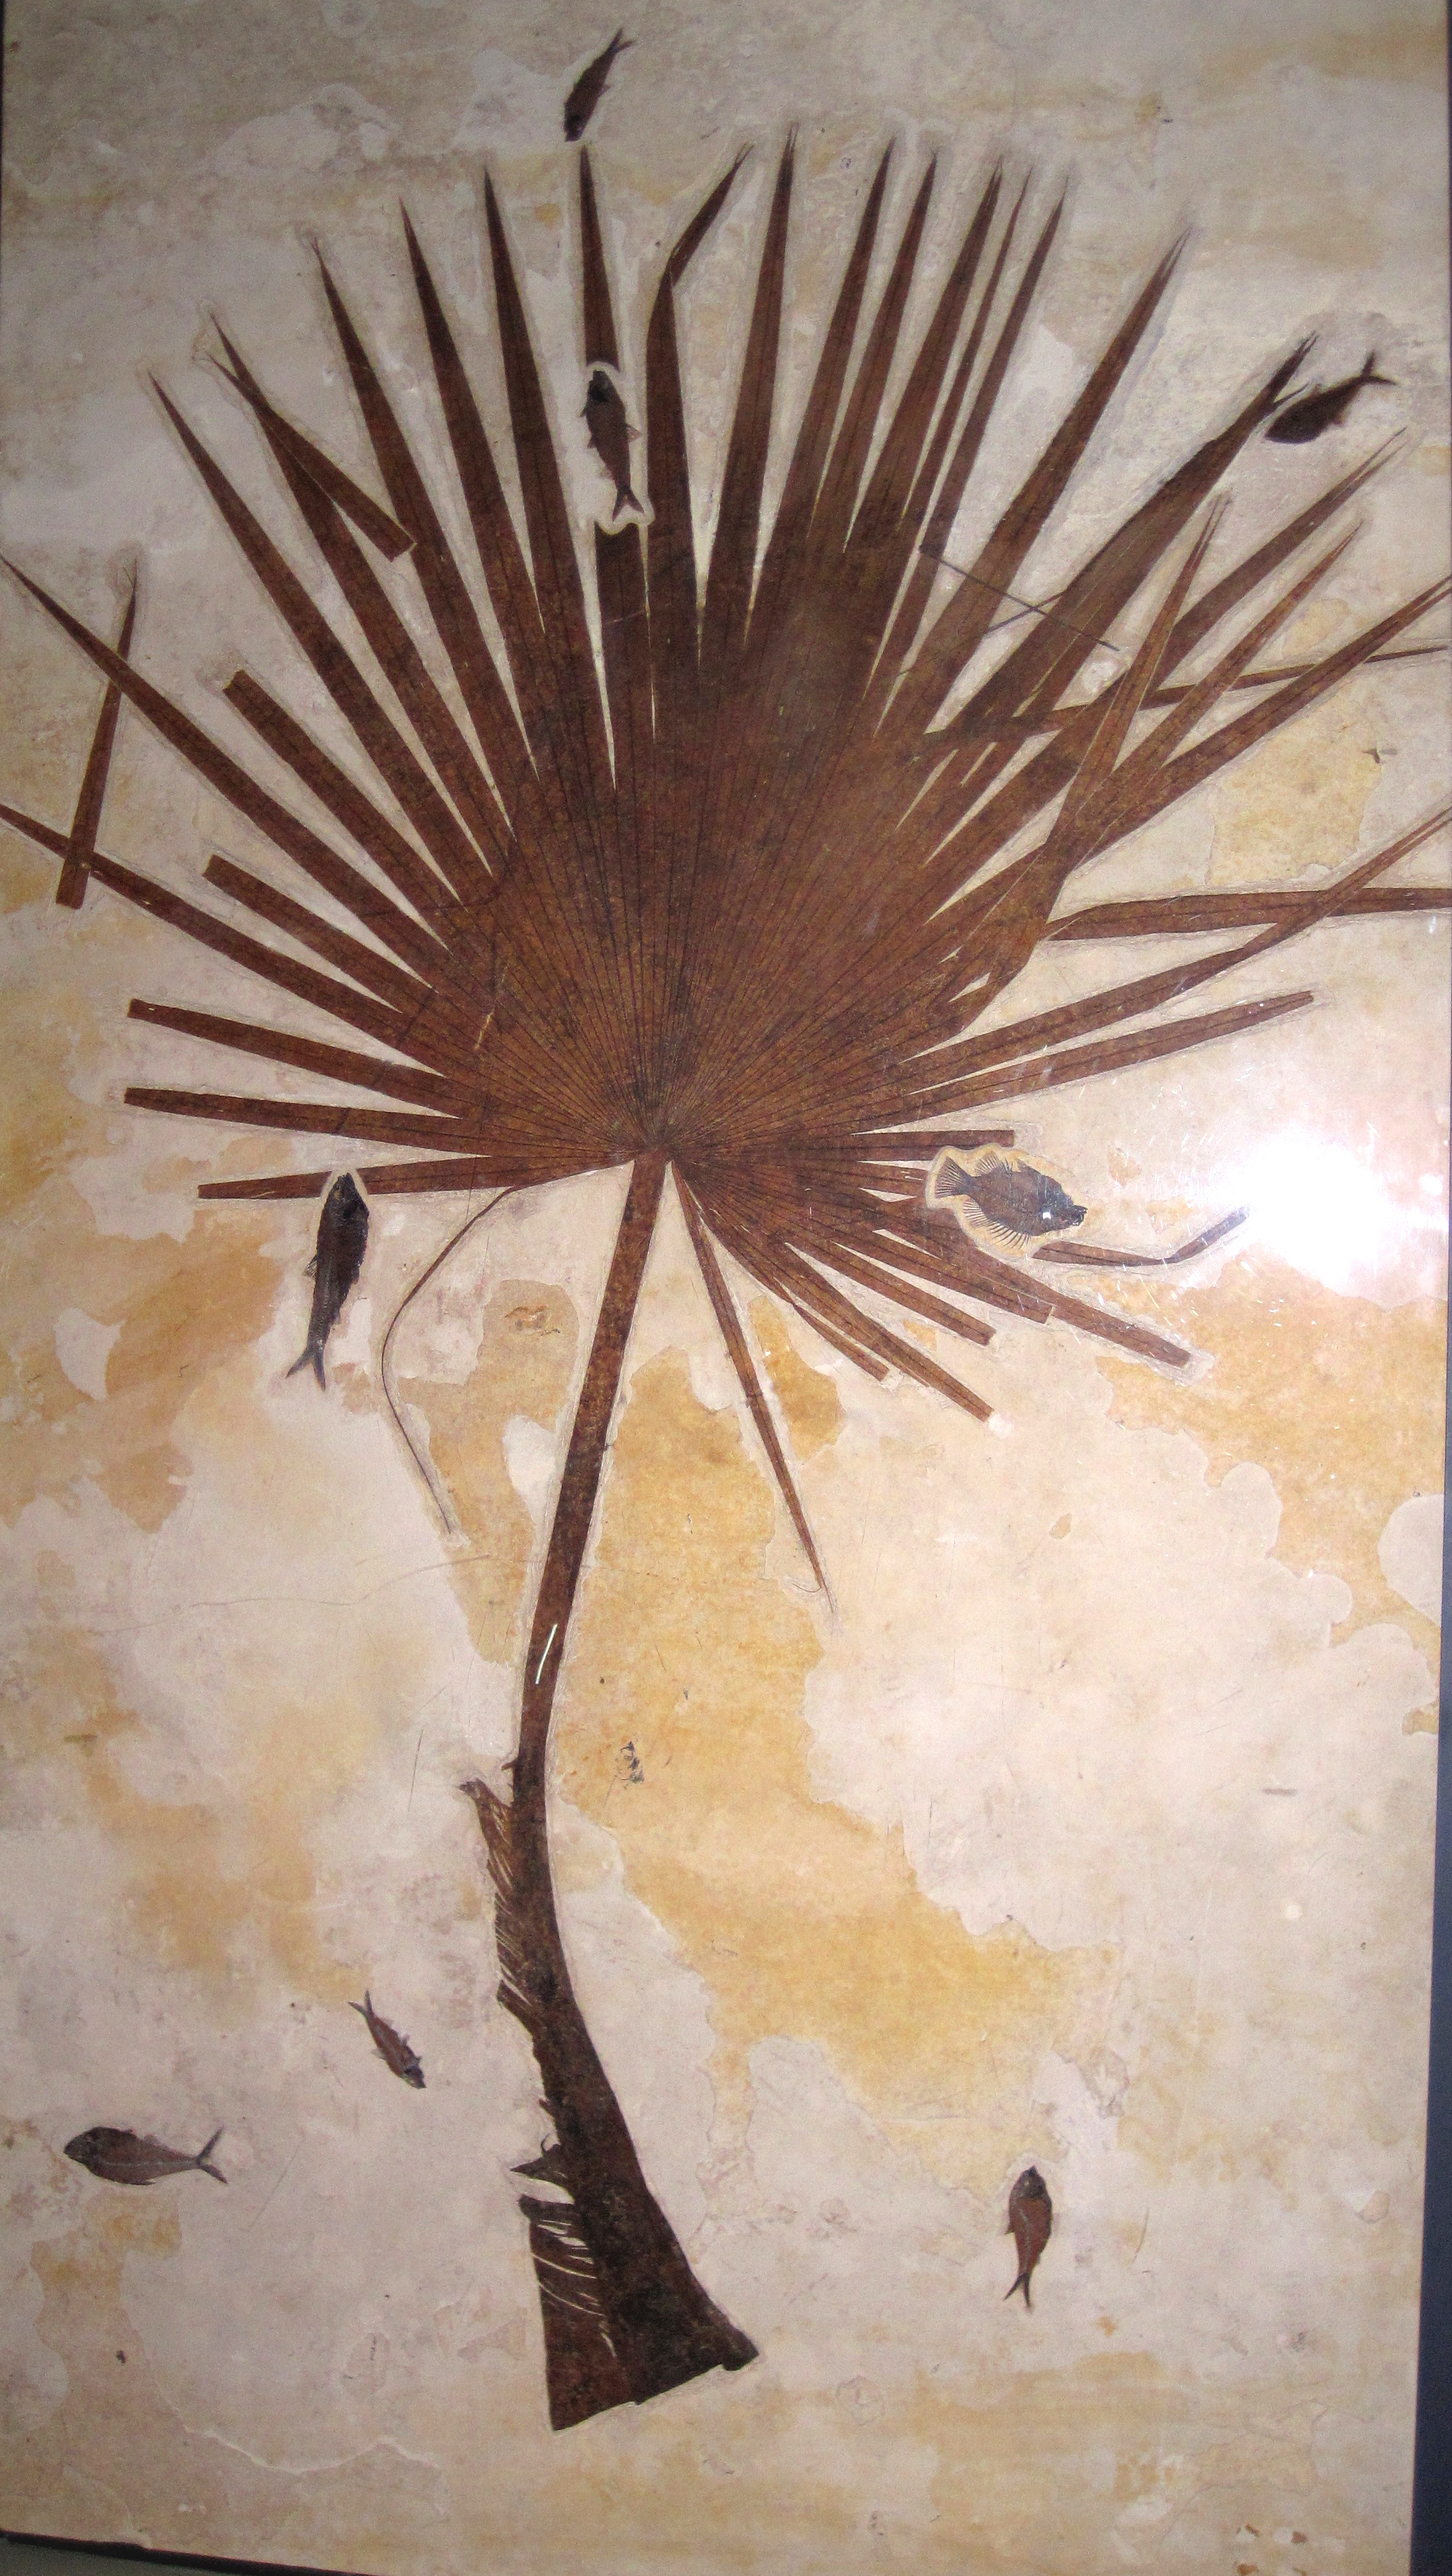 File:Sabalites powelli fossil palm frond & fossil fish (Green River Formation, Lower Eocene ...